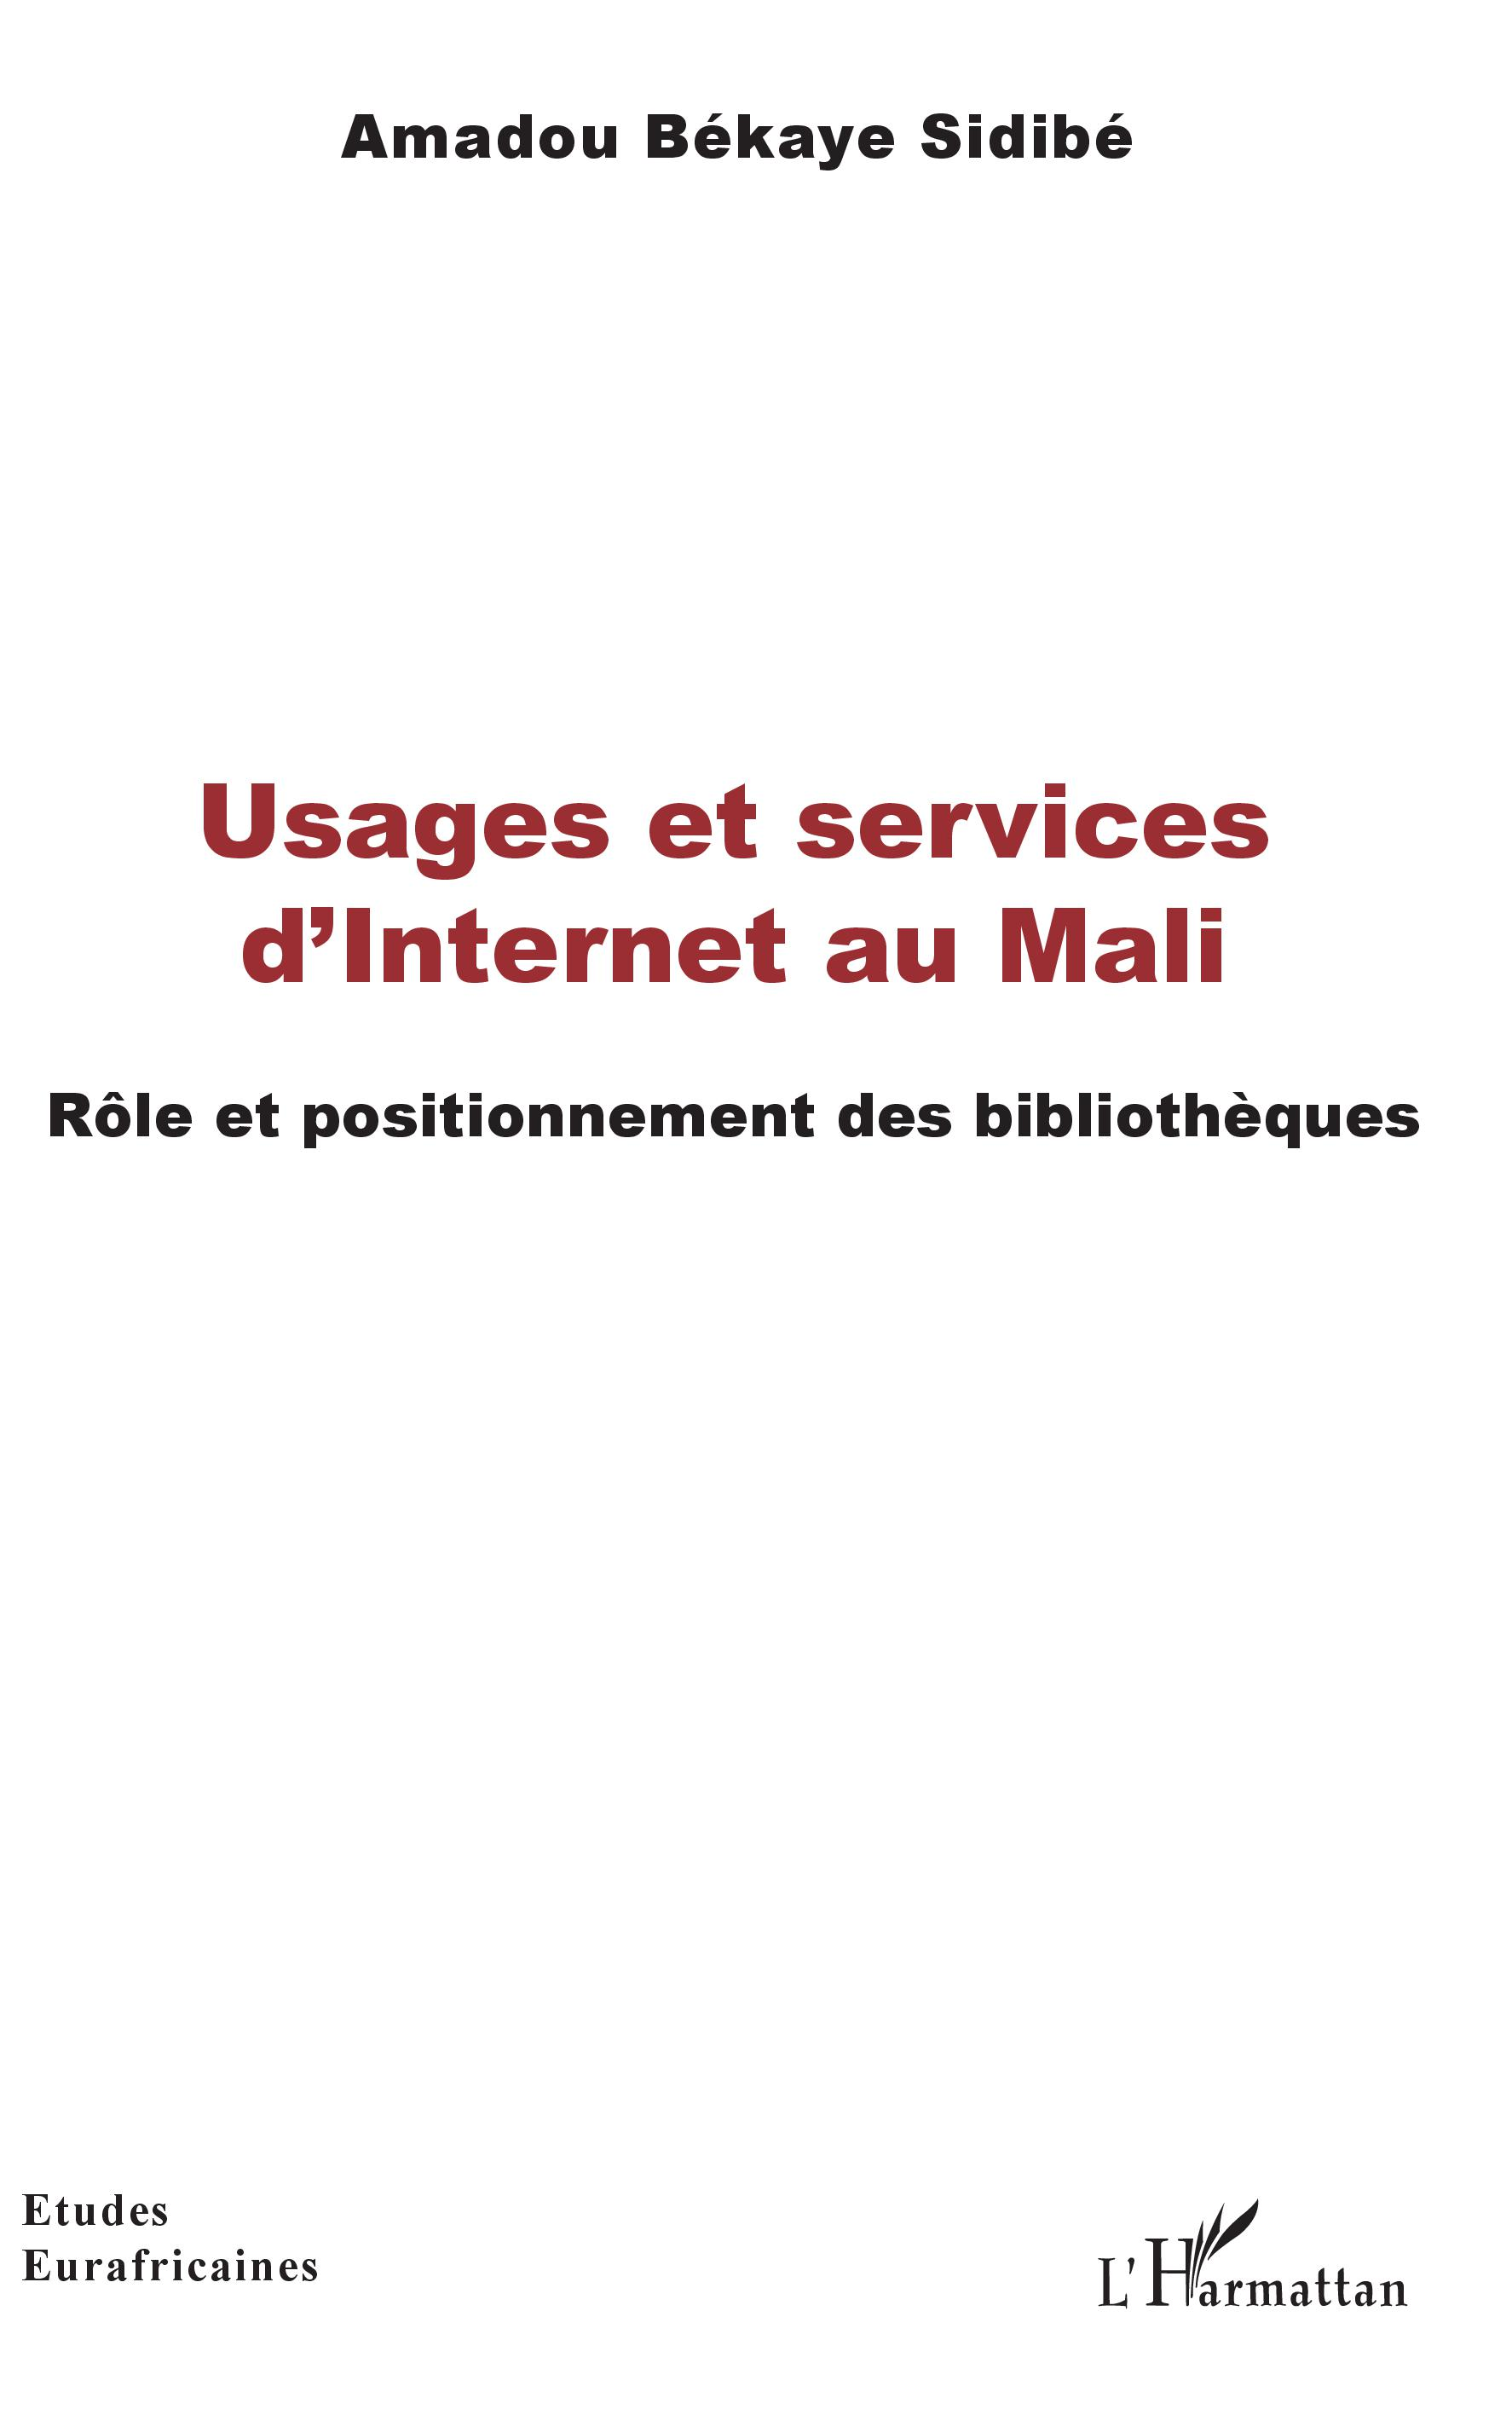 Usages et services d'Internet au Mali